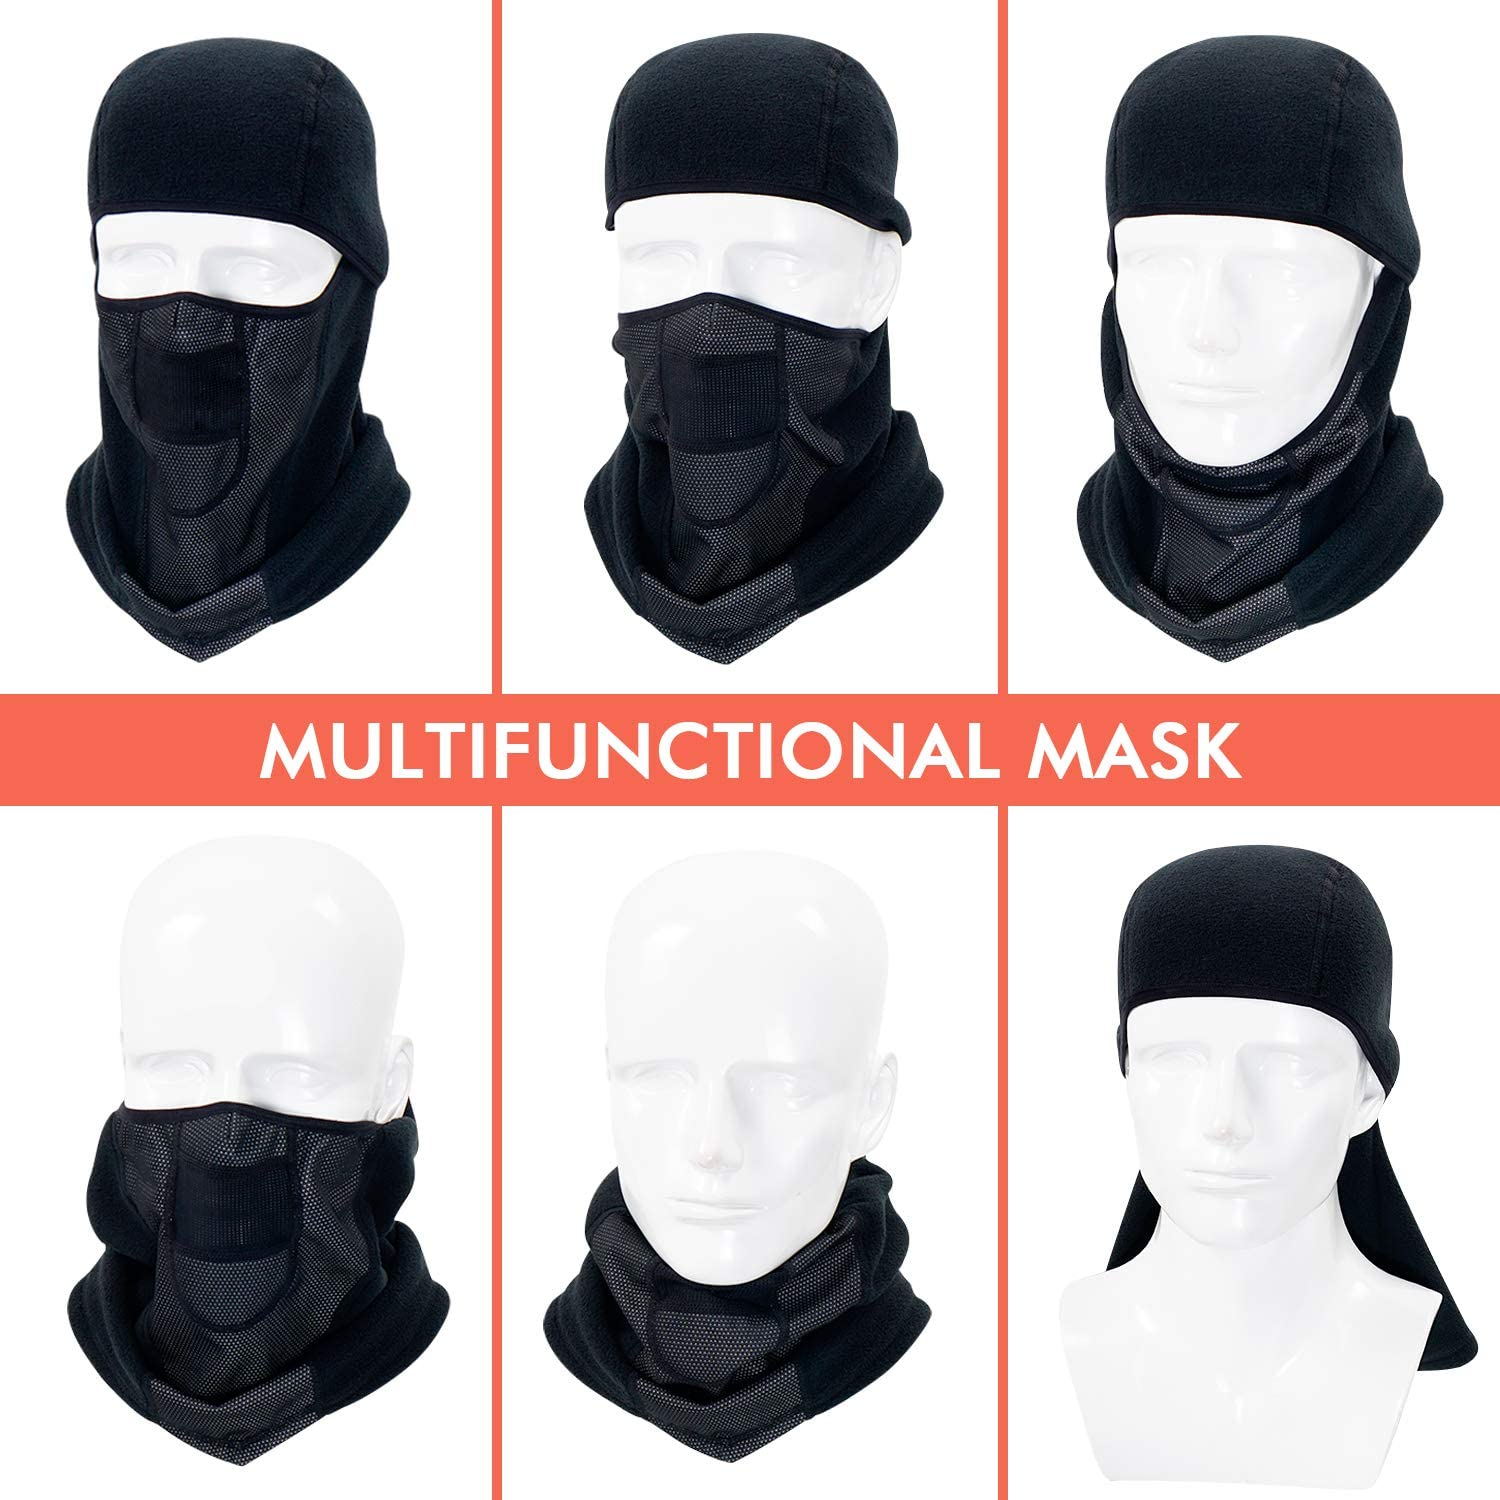 Plazenzon Balaclava Ski Mask Winter Face Mask for Motorcycle Cycling Windproof Fleece Full Face Cover for Cold Weather